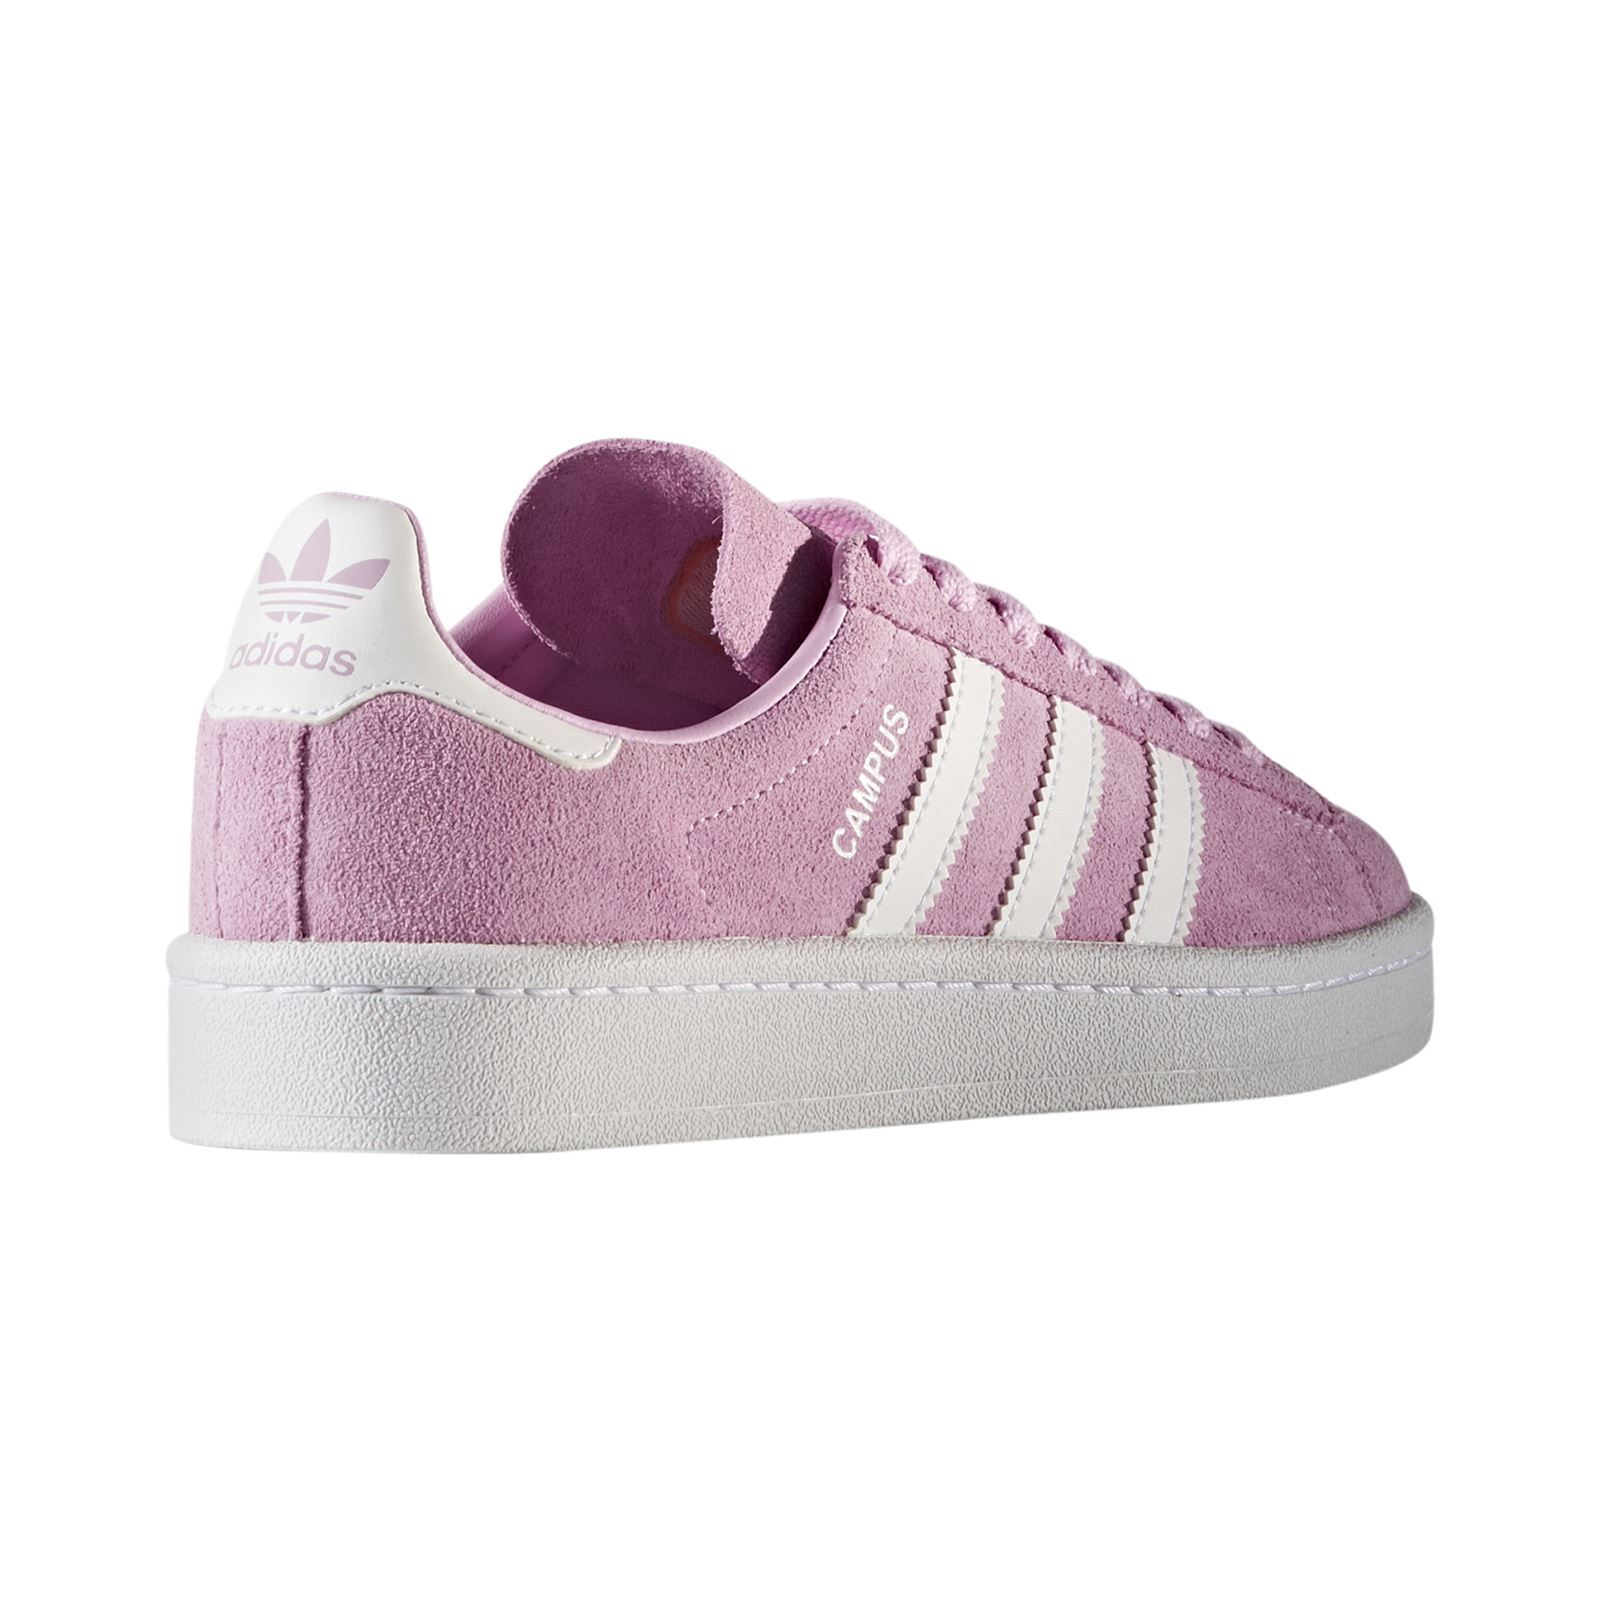 adidas originals campus sneakers mit lederanteil rosa brandalley. Black Bedroom Furniture Sets. Home Design Ideas